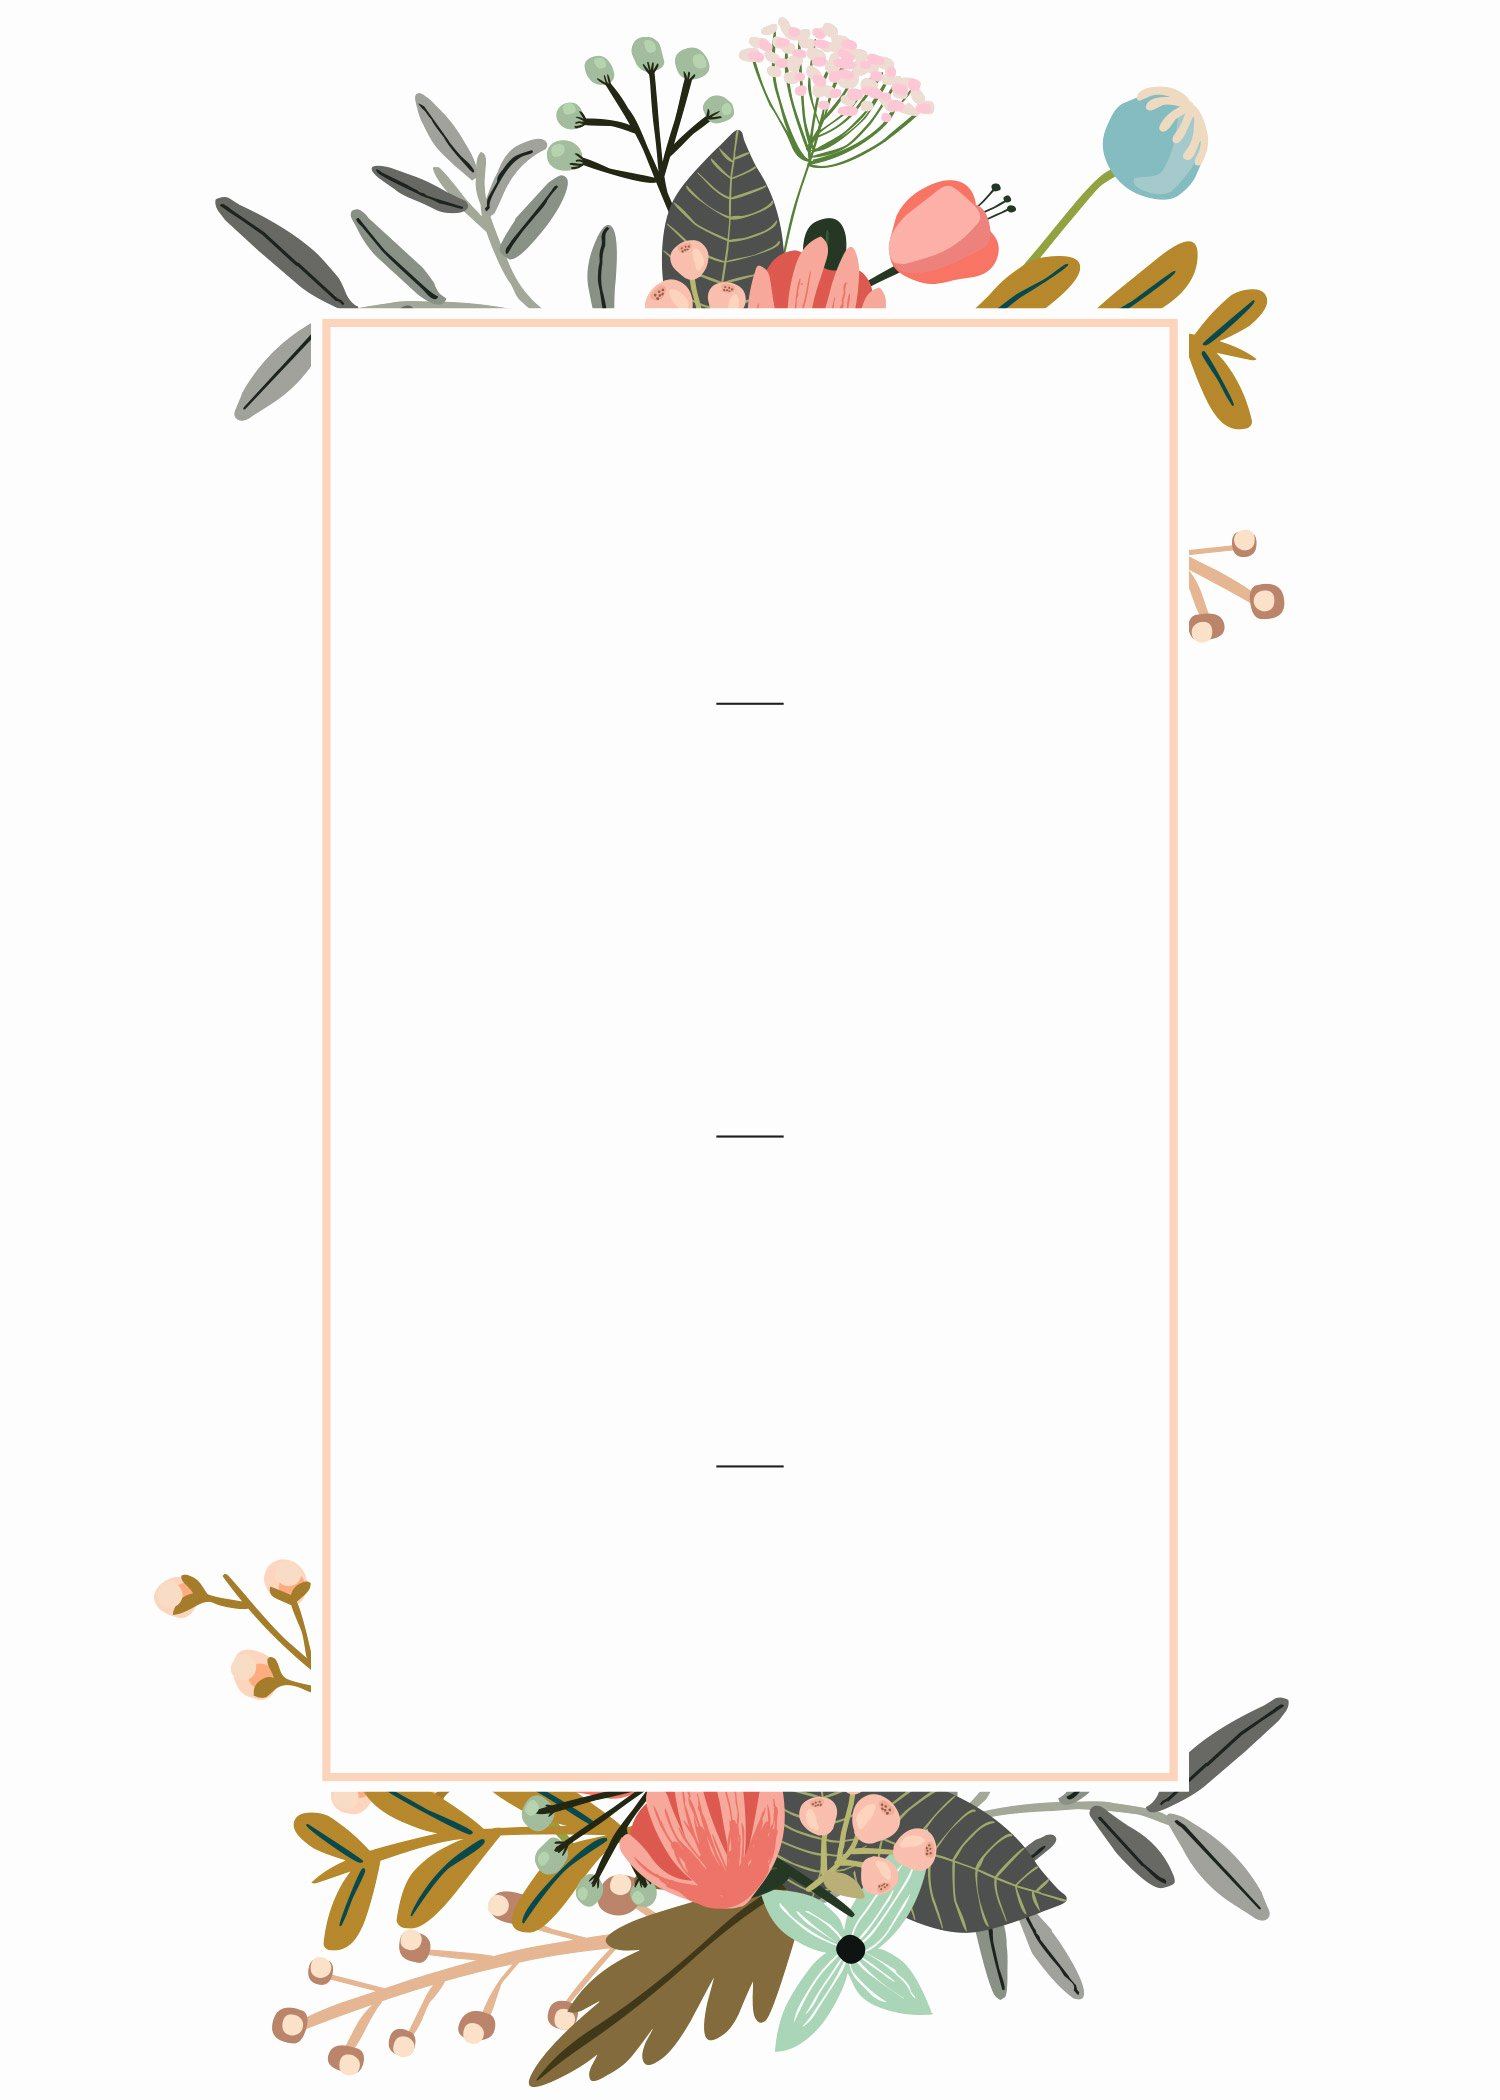 Make An Invitation In Word Lovely Editable Wedding Invitation Templates for the Perfect Card